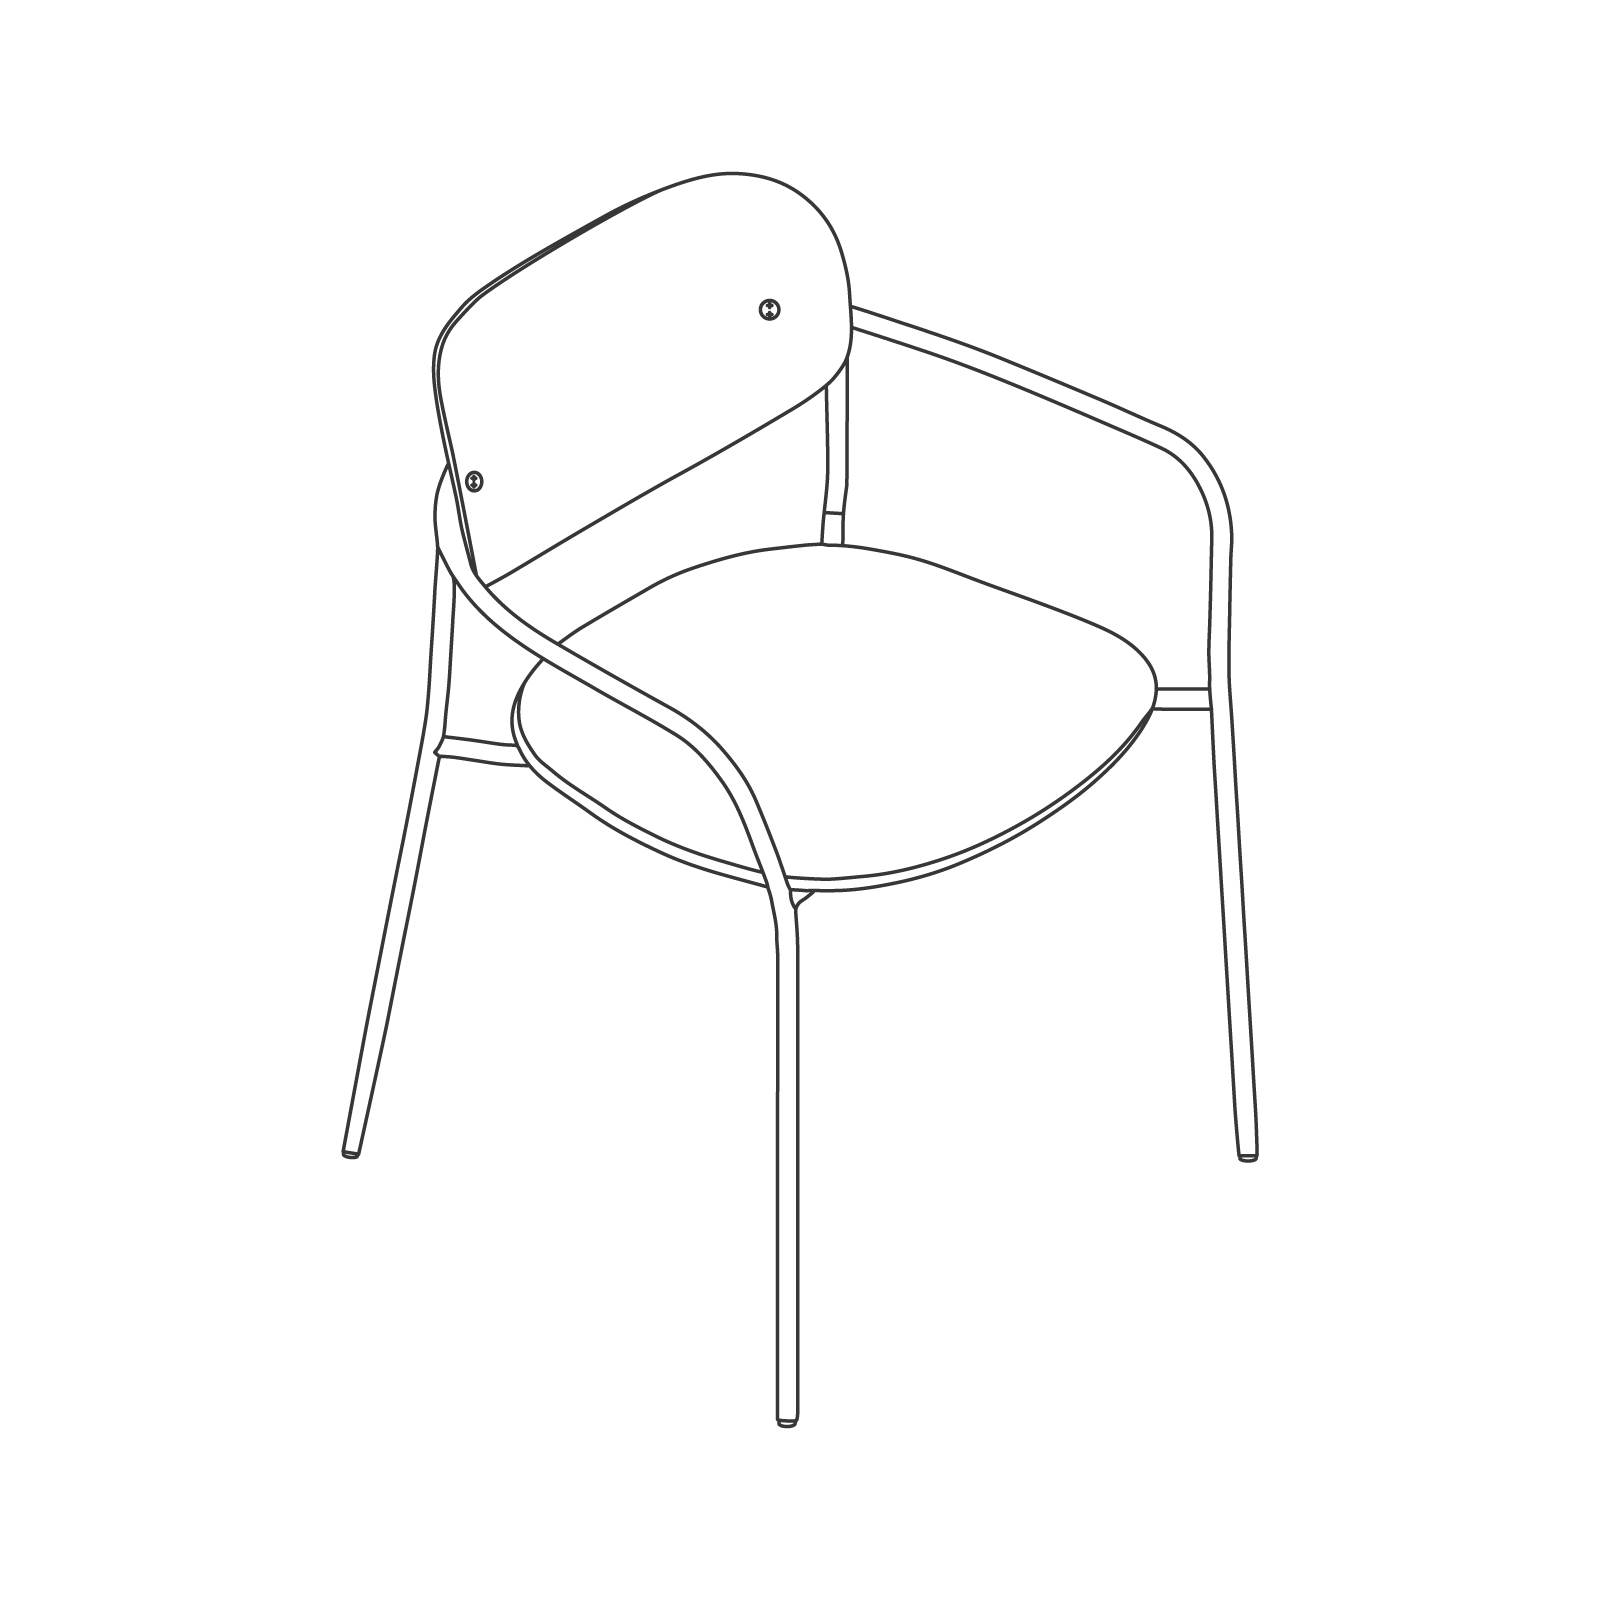 A line drawing - Portrait Chair–With Arms–Upholstered Seat–Wood Back